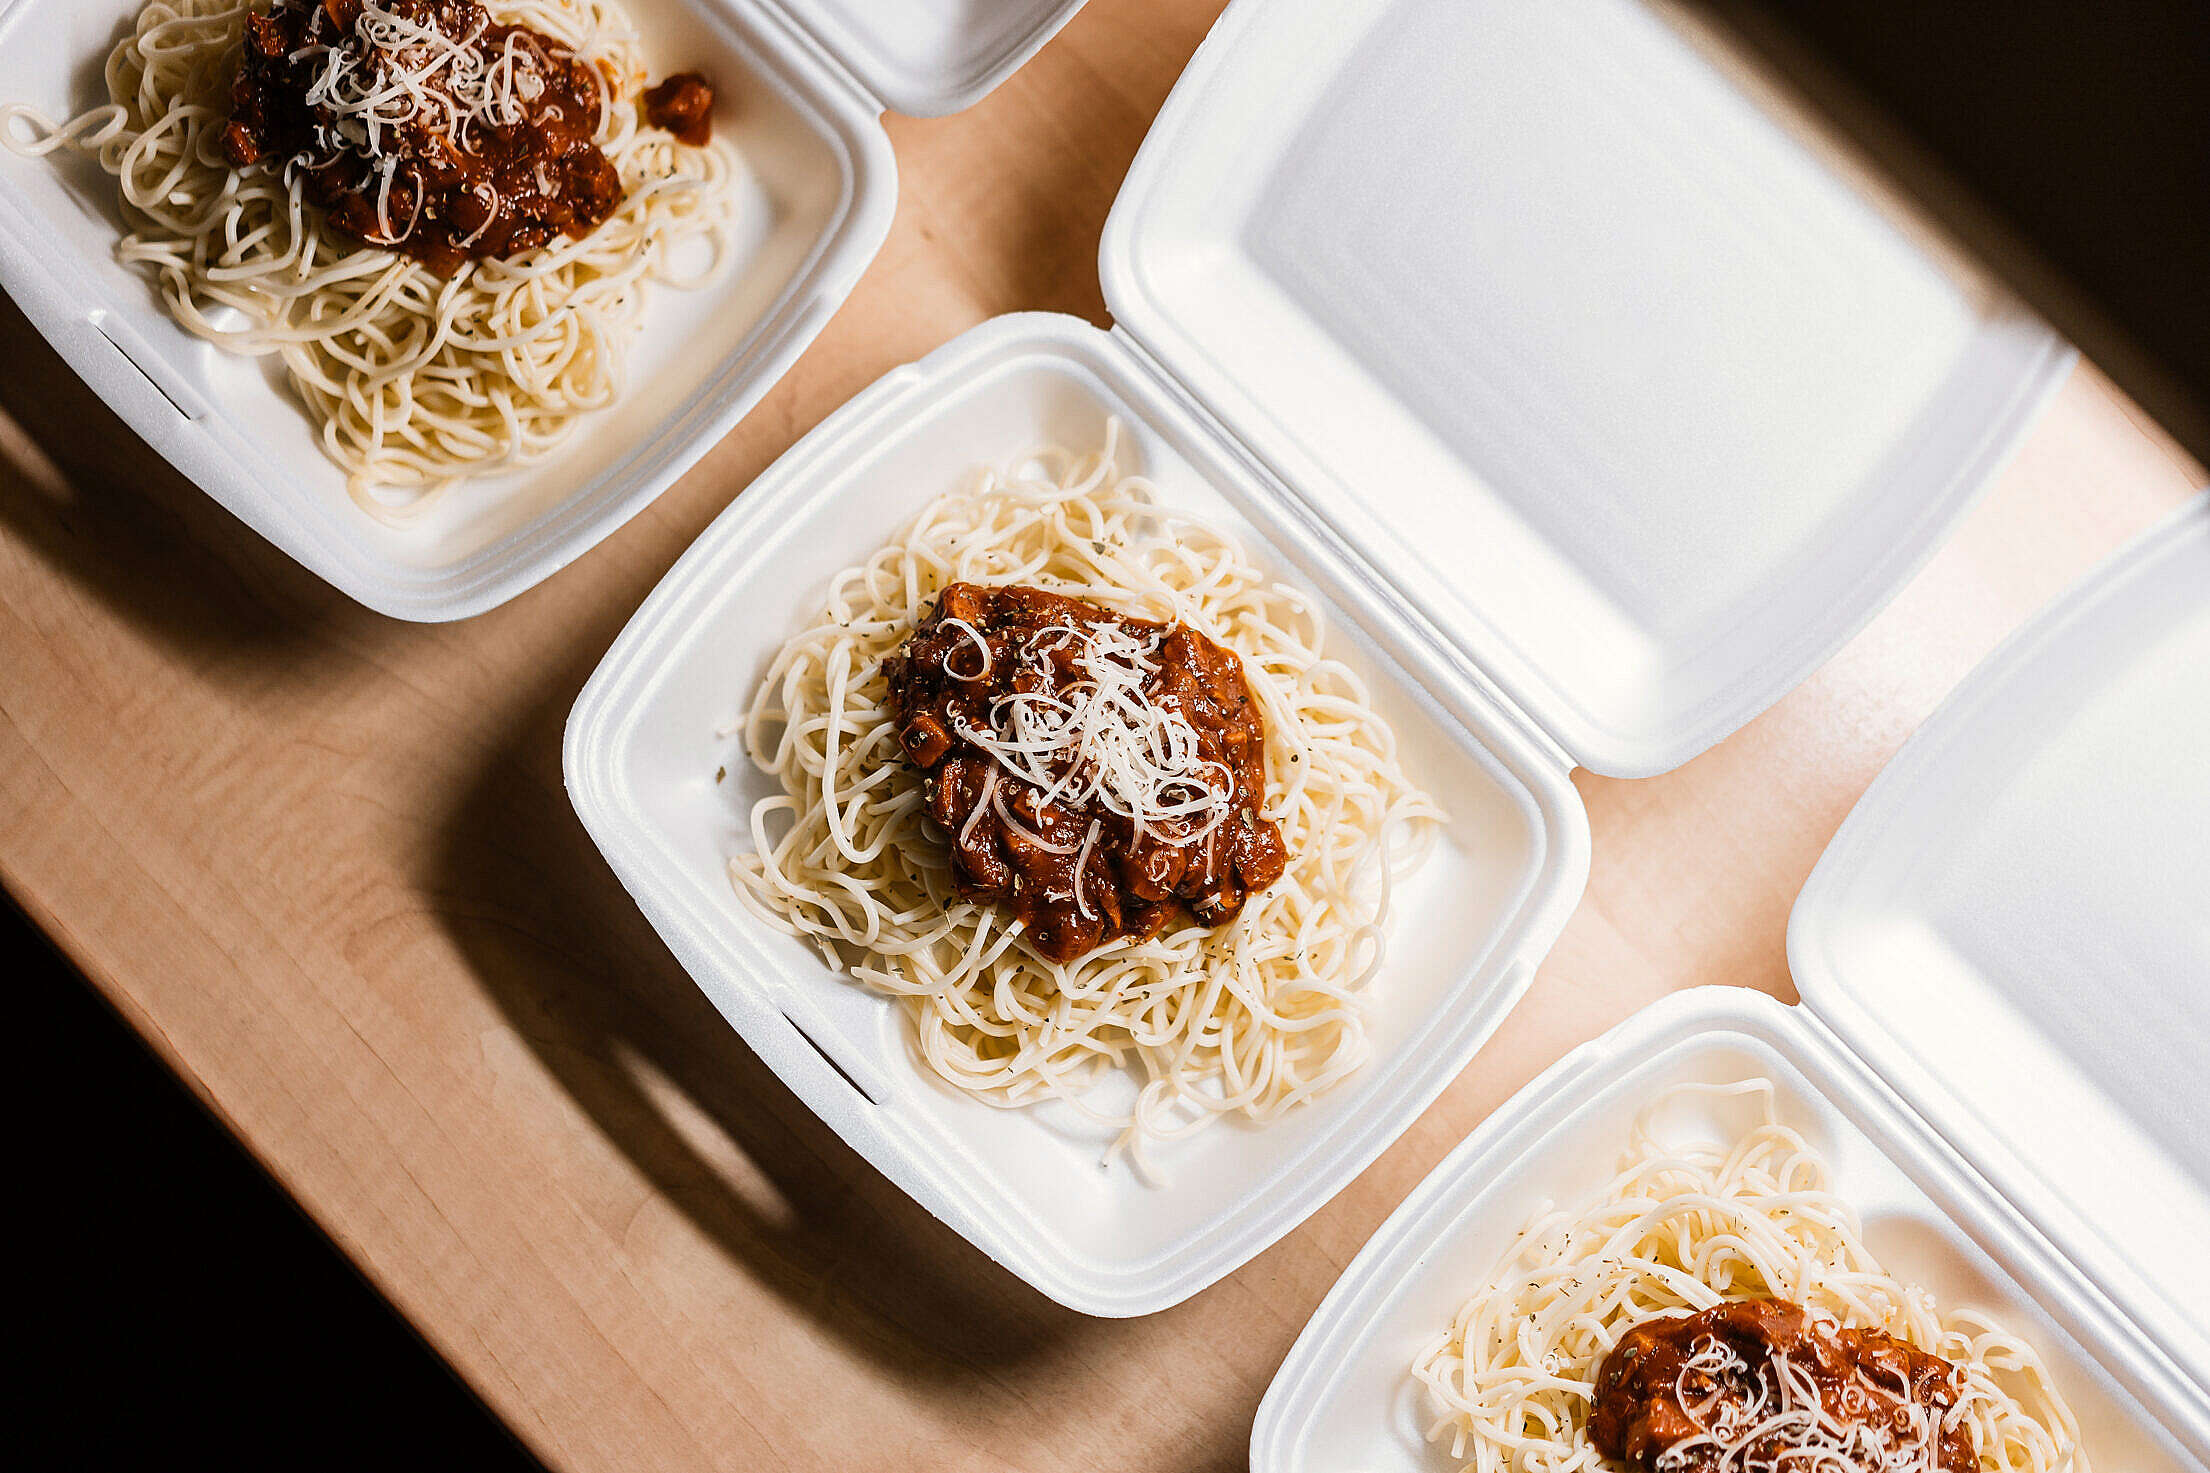 Food in The Dining Box Free Stock Photo